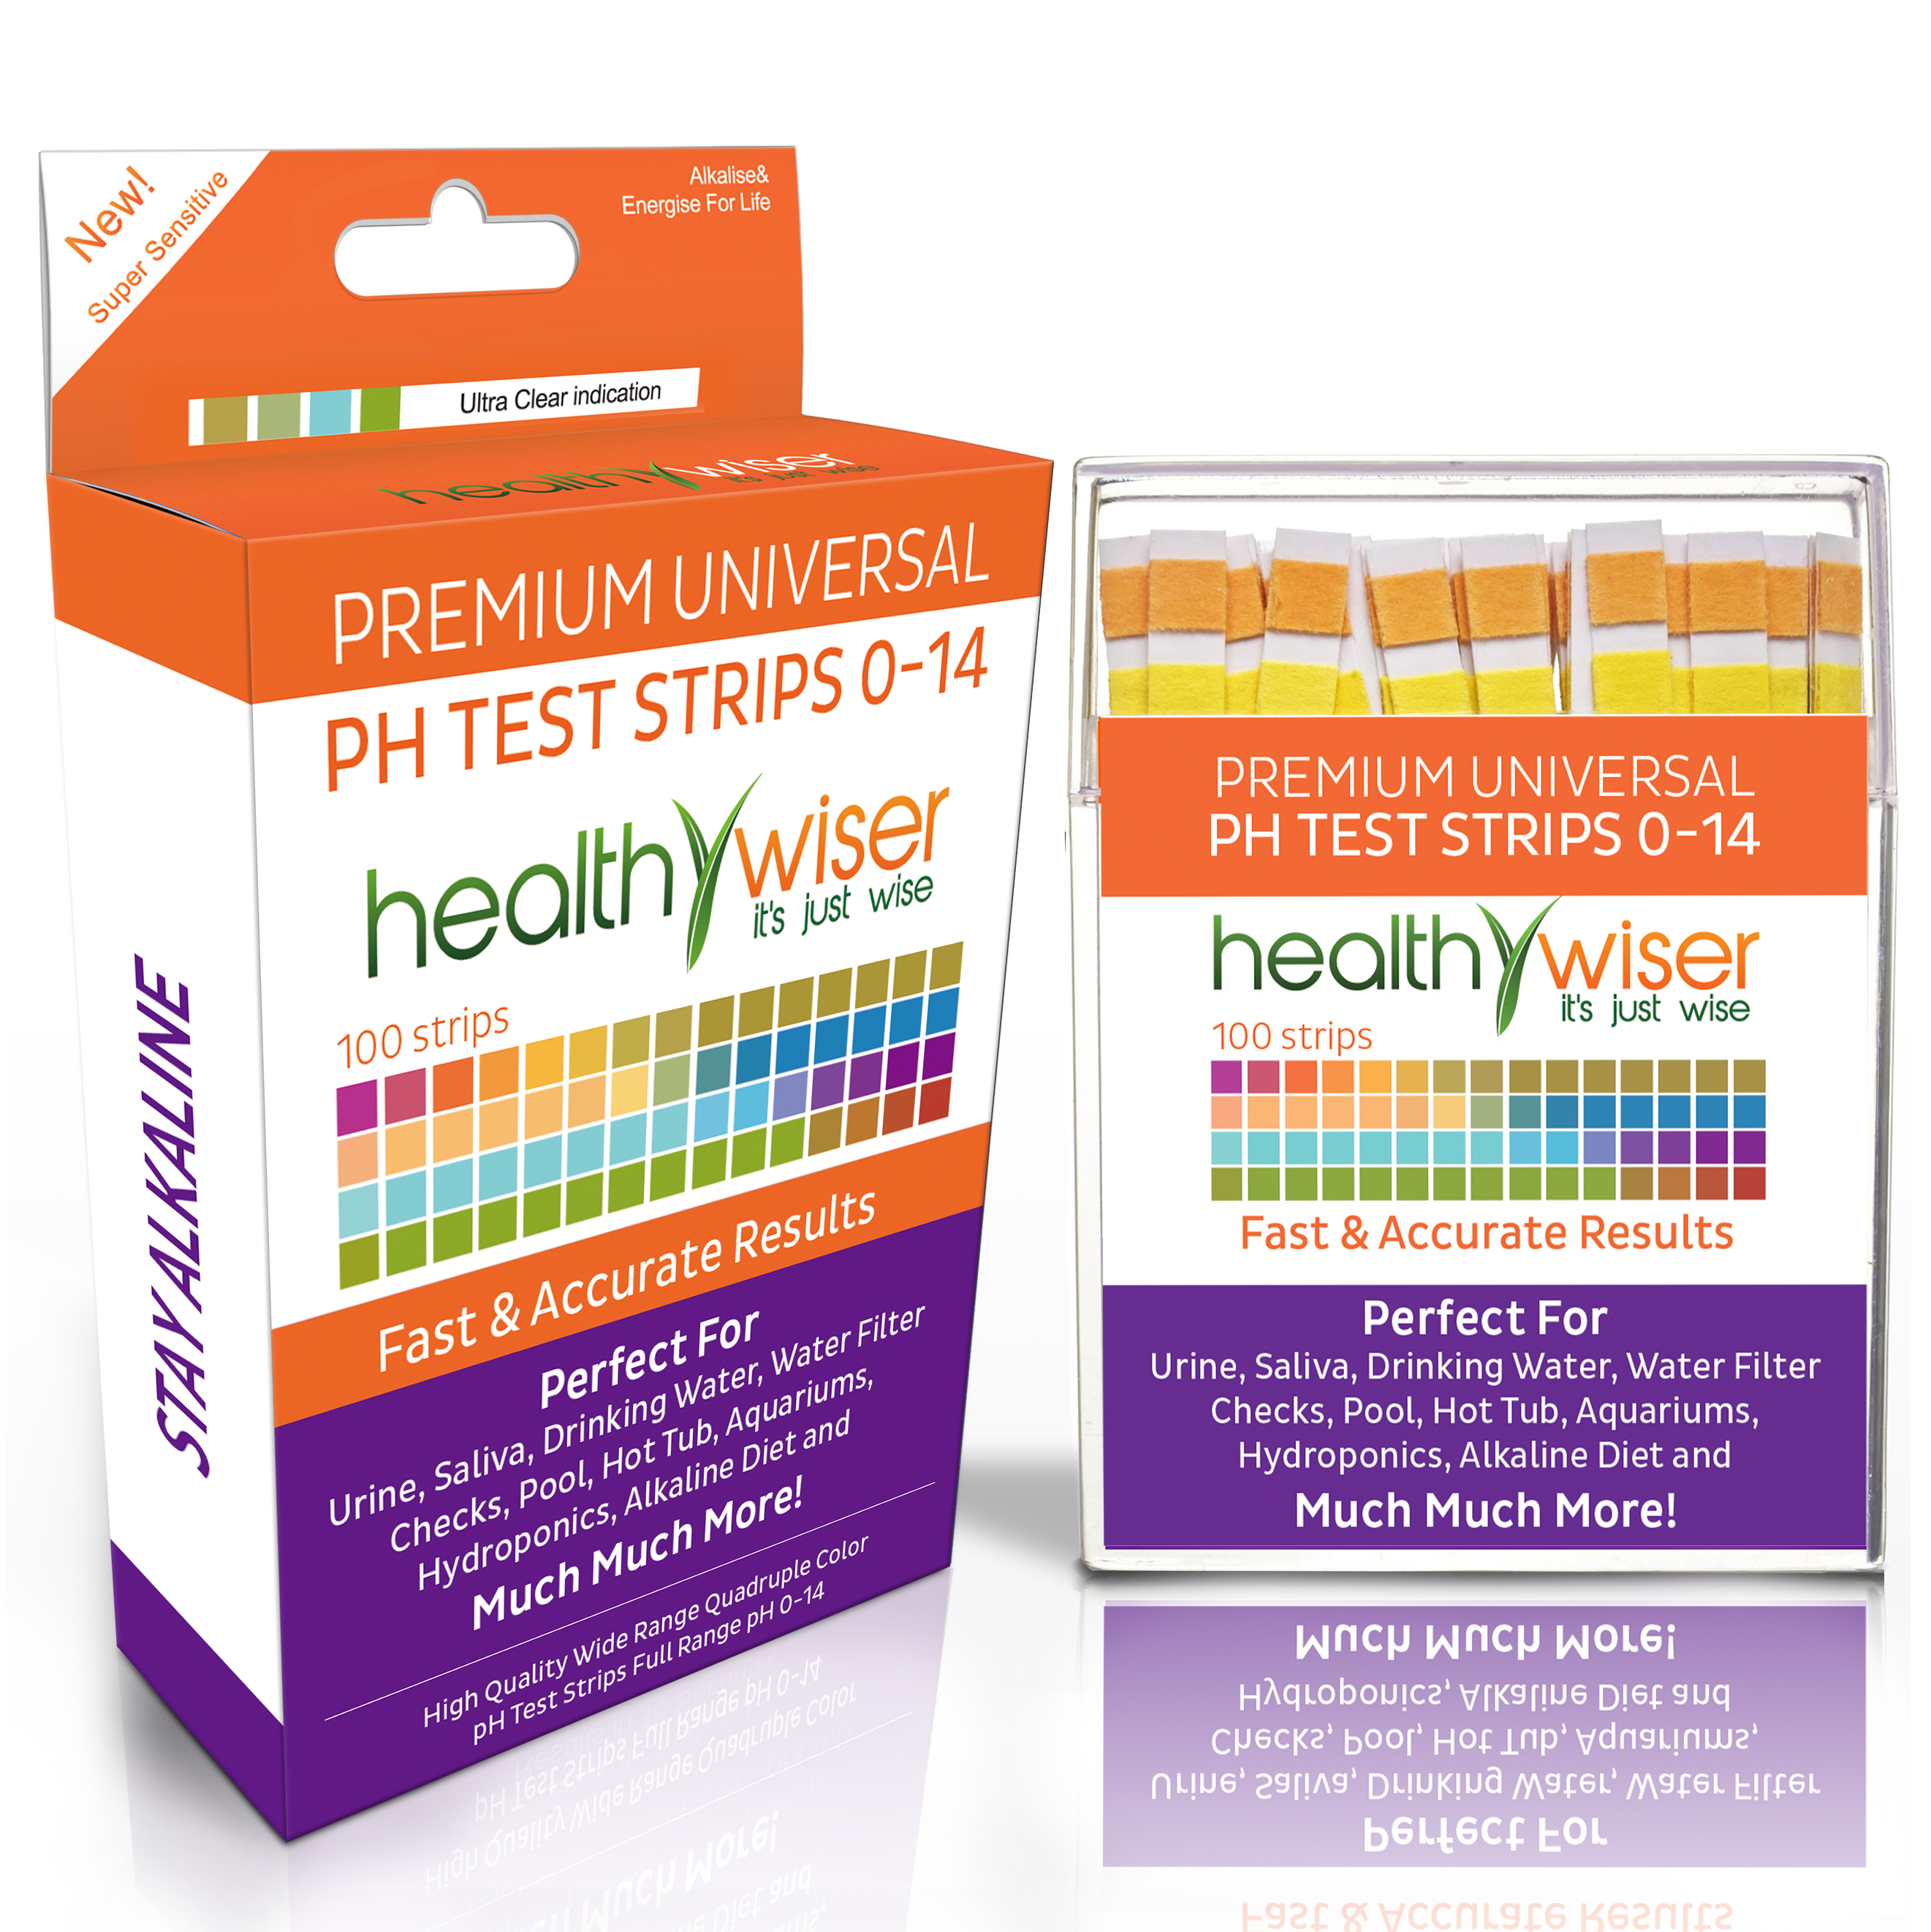 pH Test Strips 0-14, Universal Strips To Test Urine, Saliva, Water, Pool, Hot Tub, Hydroponics, Garden Soil, and More!